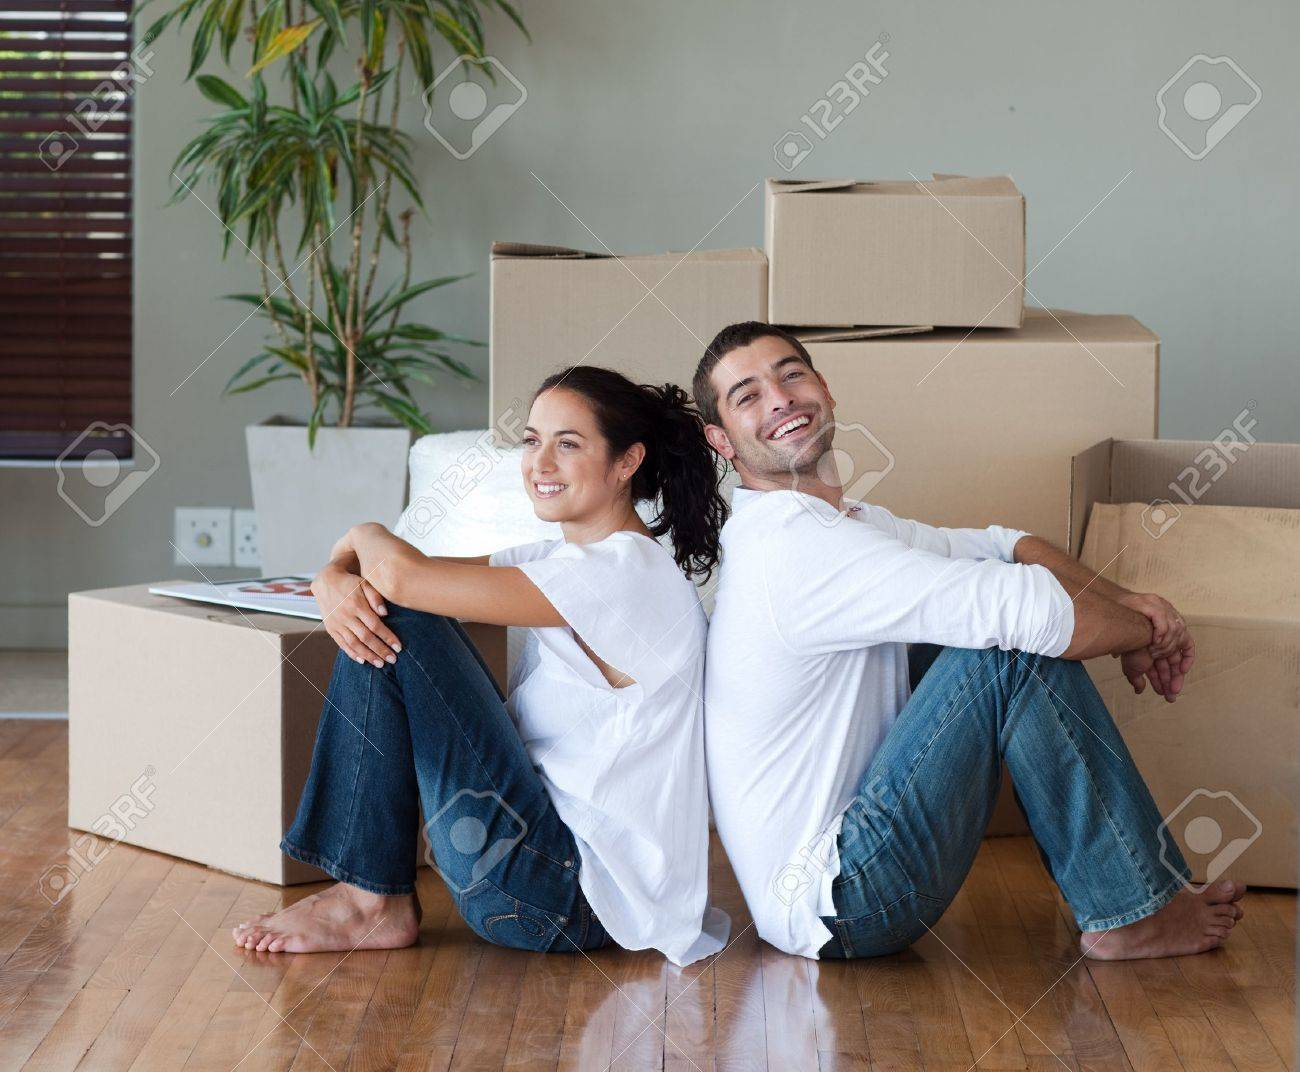 Bright couple with unpacking boxes moving to a new house Stock Photo - 10249839